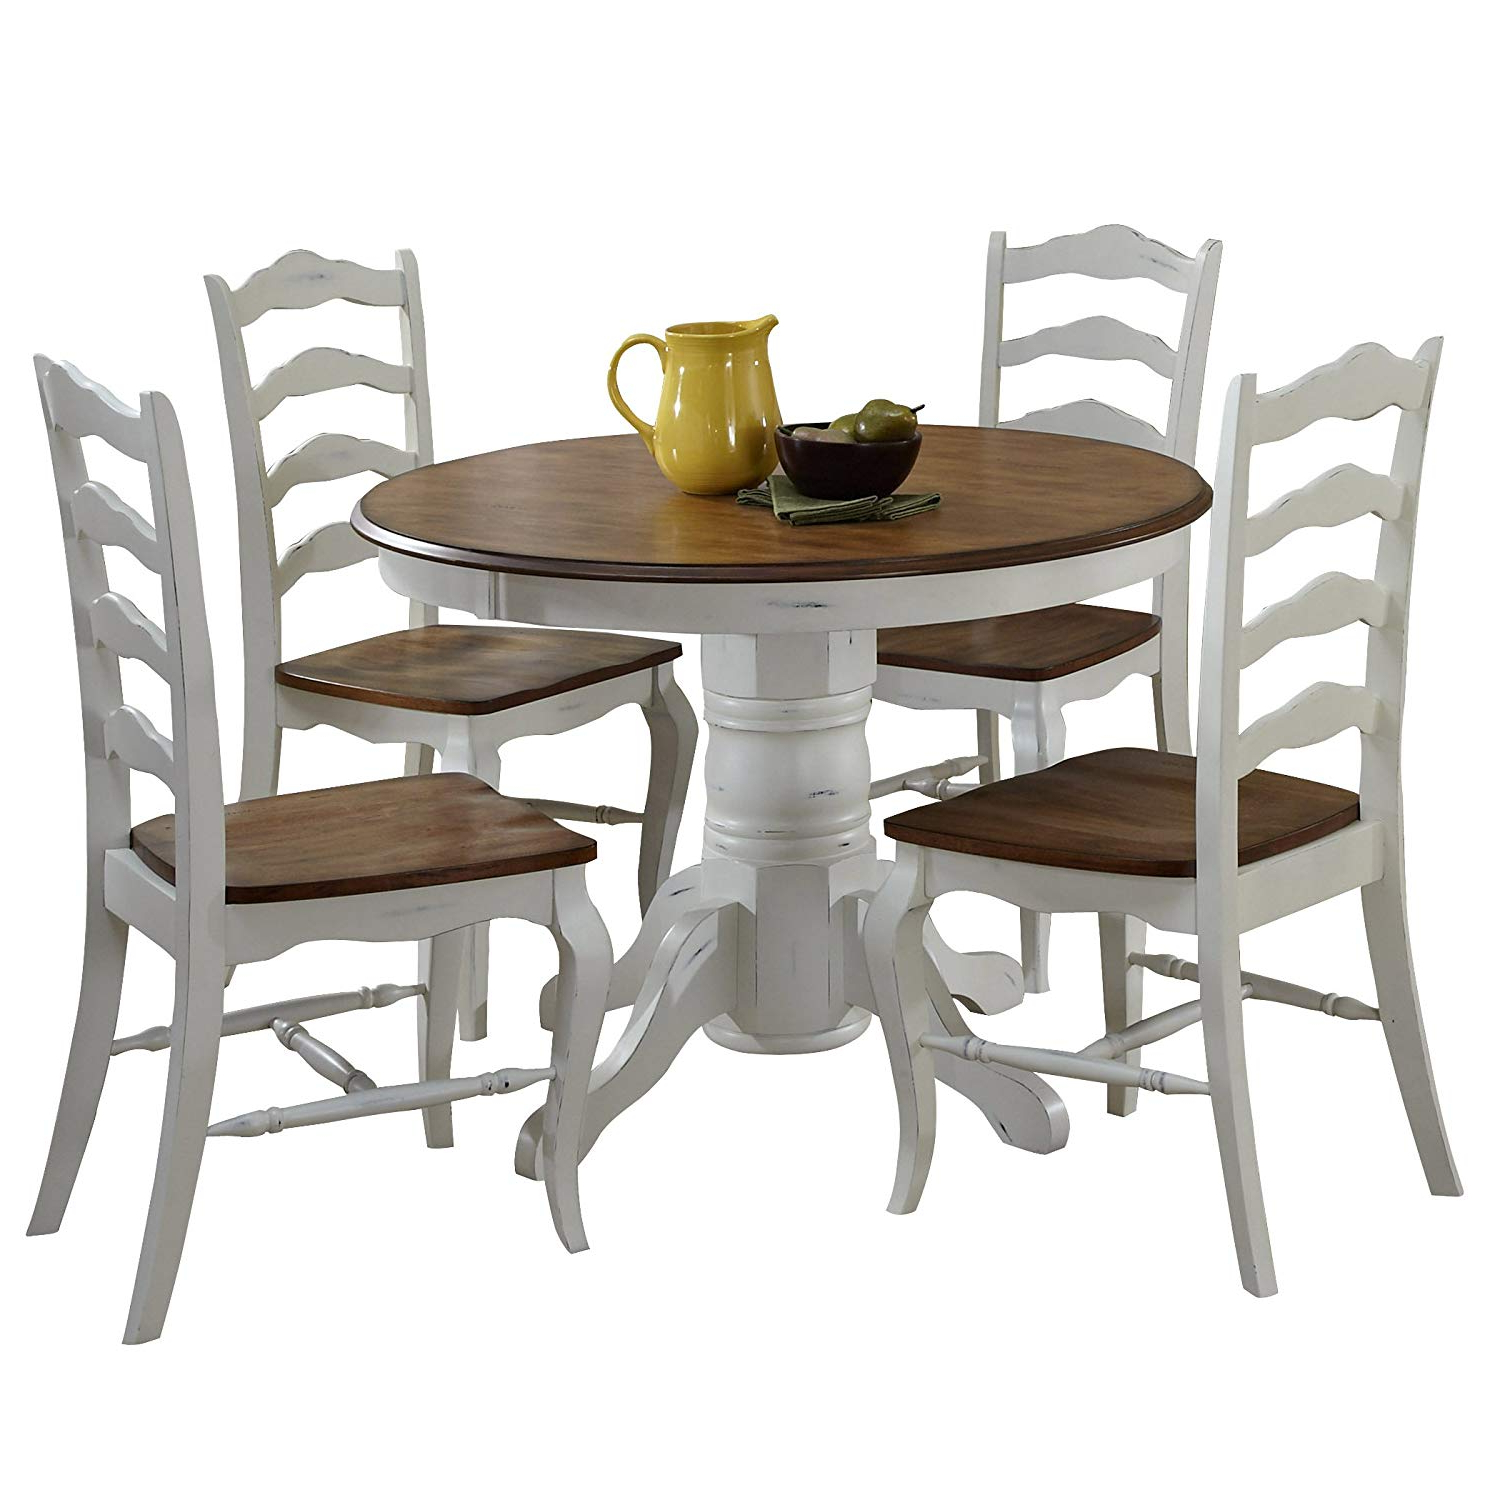 "Current Partin 3 Piece Dining Sets Intended For French Countryside Oak/white 42"" Round Pedestal Dining Table With 4 Chairs Home Styles (View 11 of 20)"